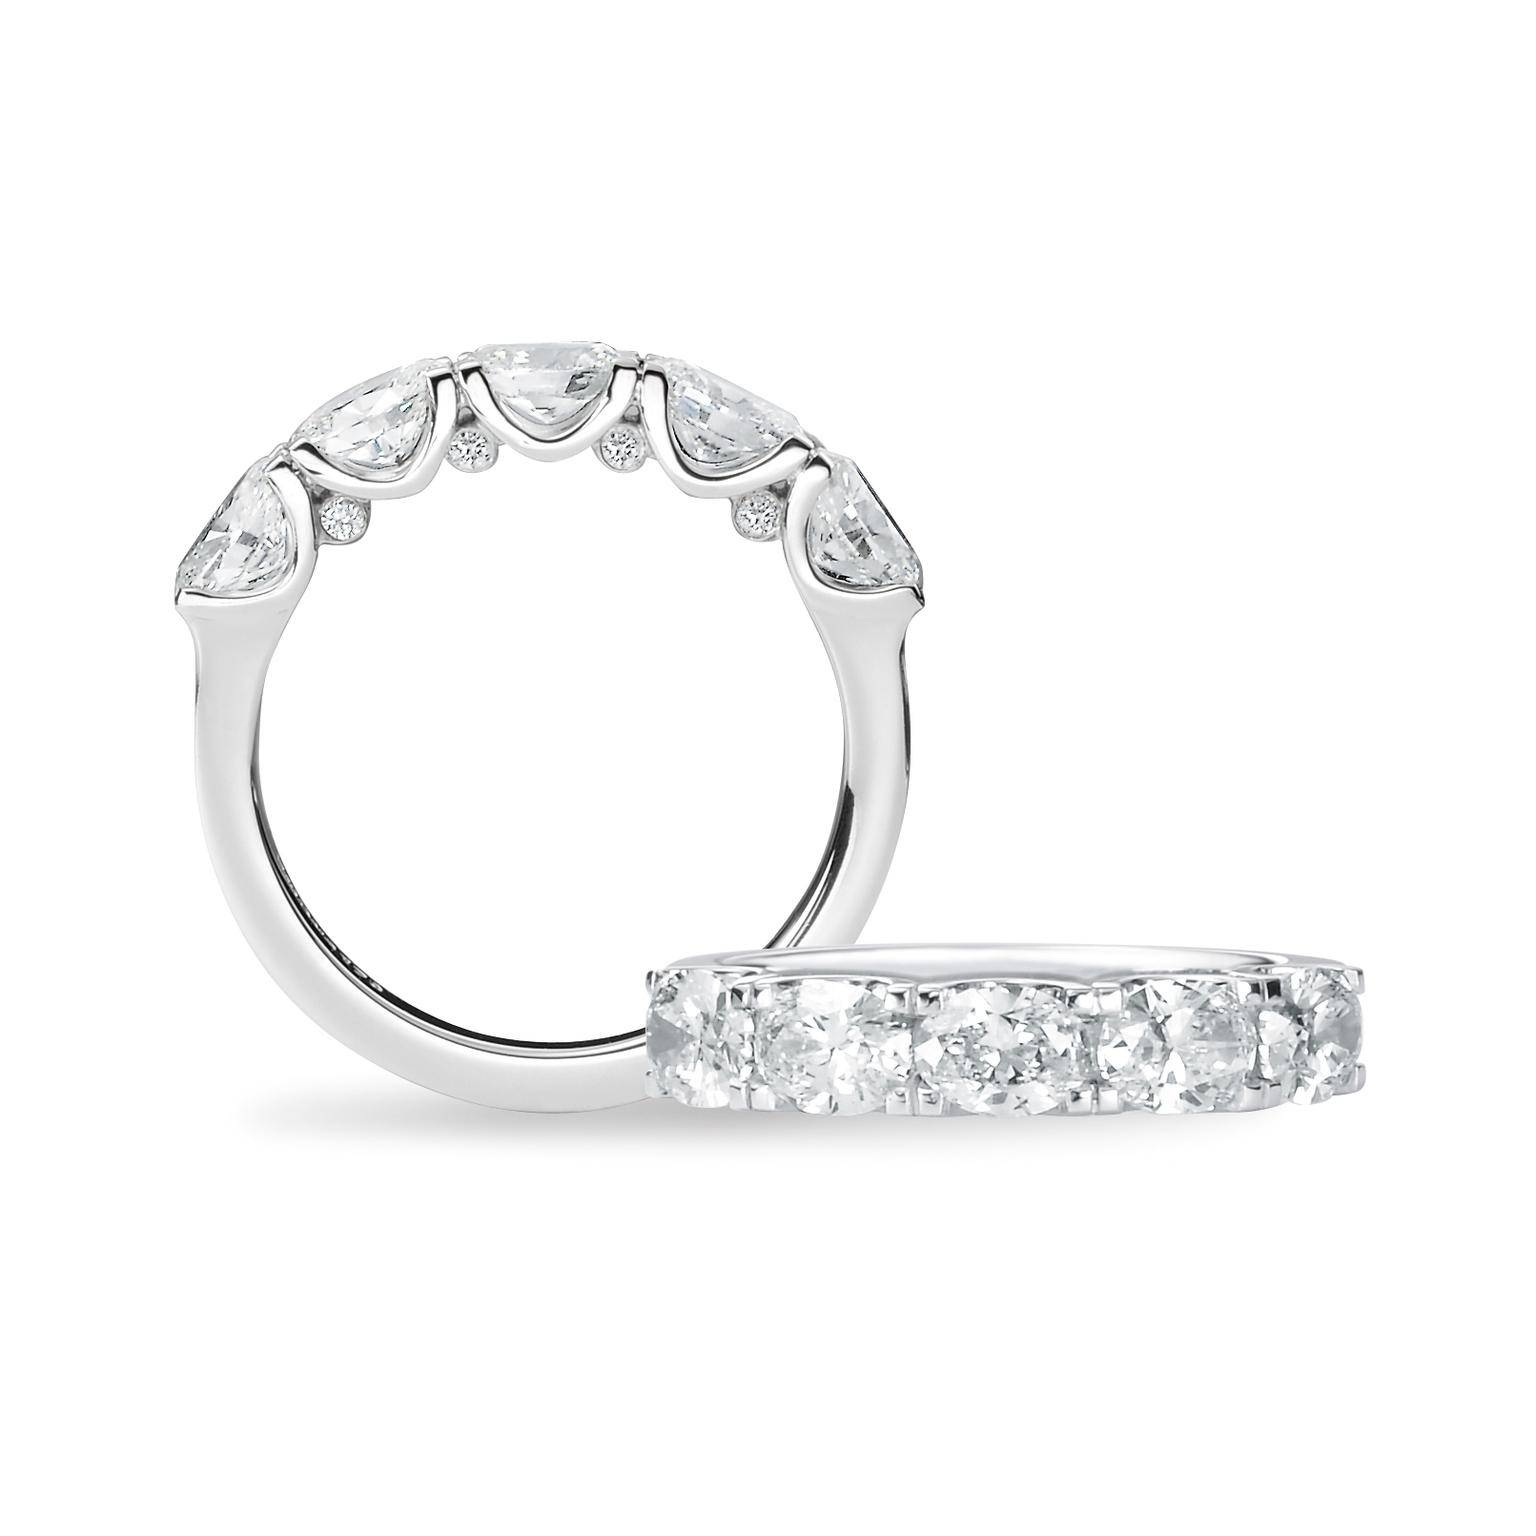 Oval Engagement Rings: The Cut For Maximum Sparkle | The Jewellery Regarding Five Diamond Engagement Ring (View 12 of 15)